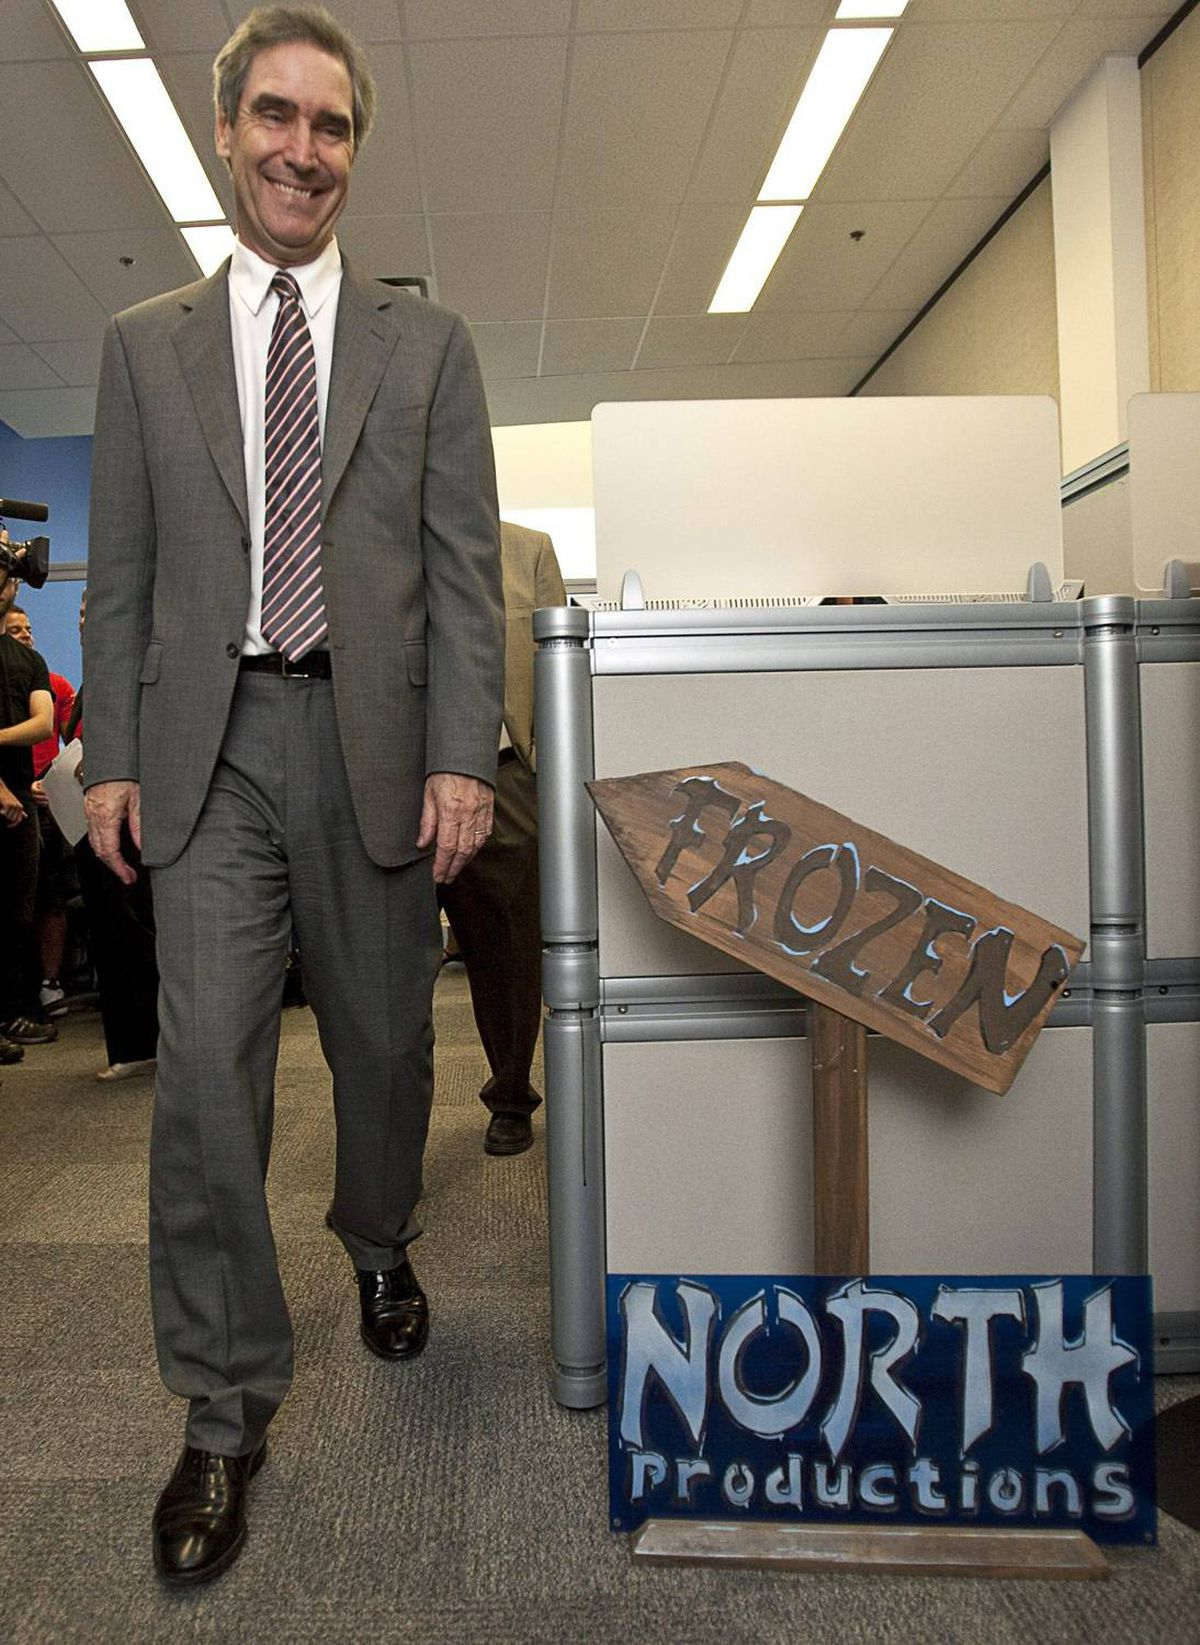 The Liberal Leader also visited video-game developer Frozen North Productions at the Accelerator Centre in Waterloo, Ont.